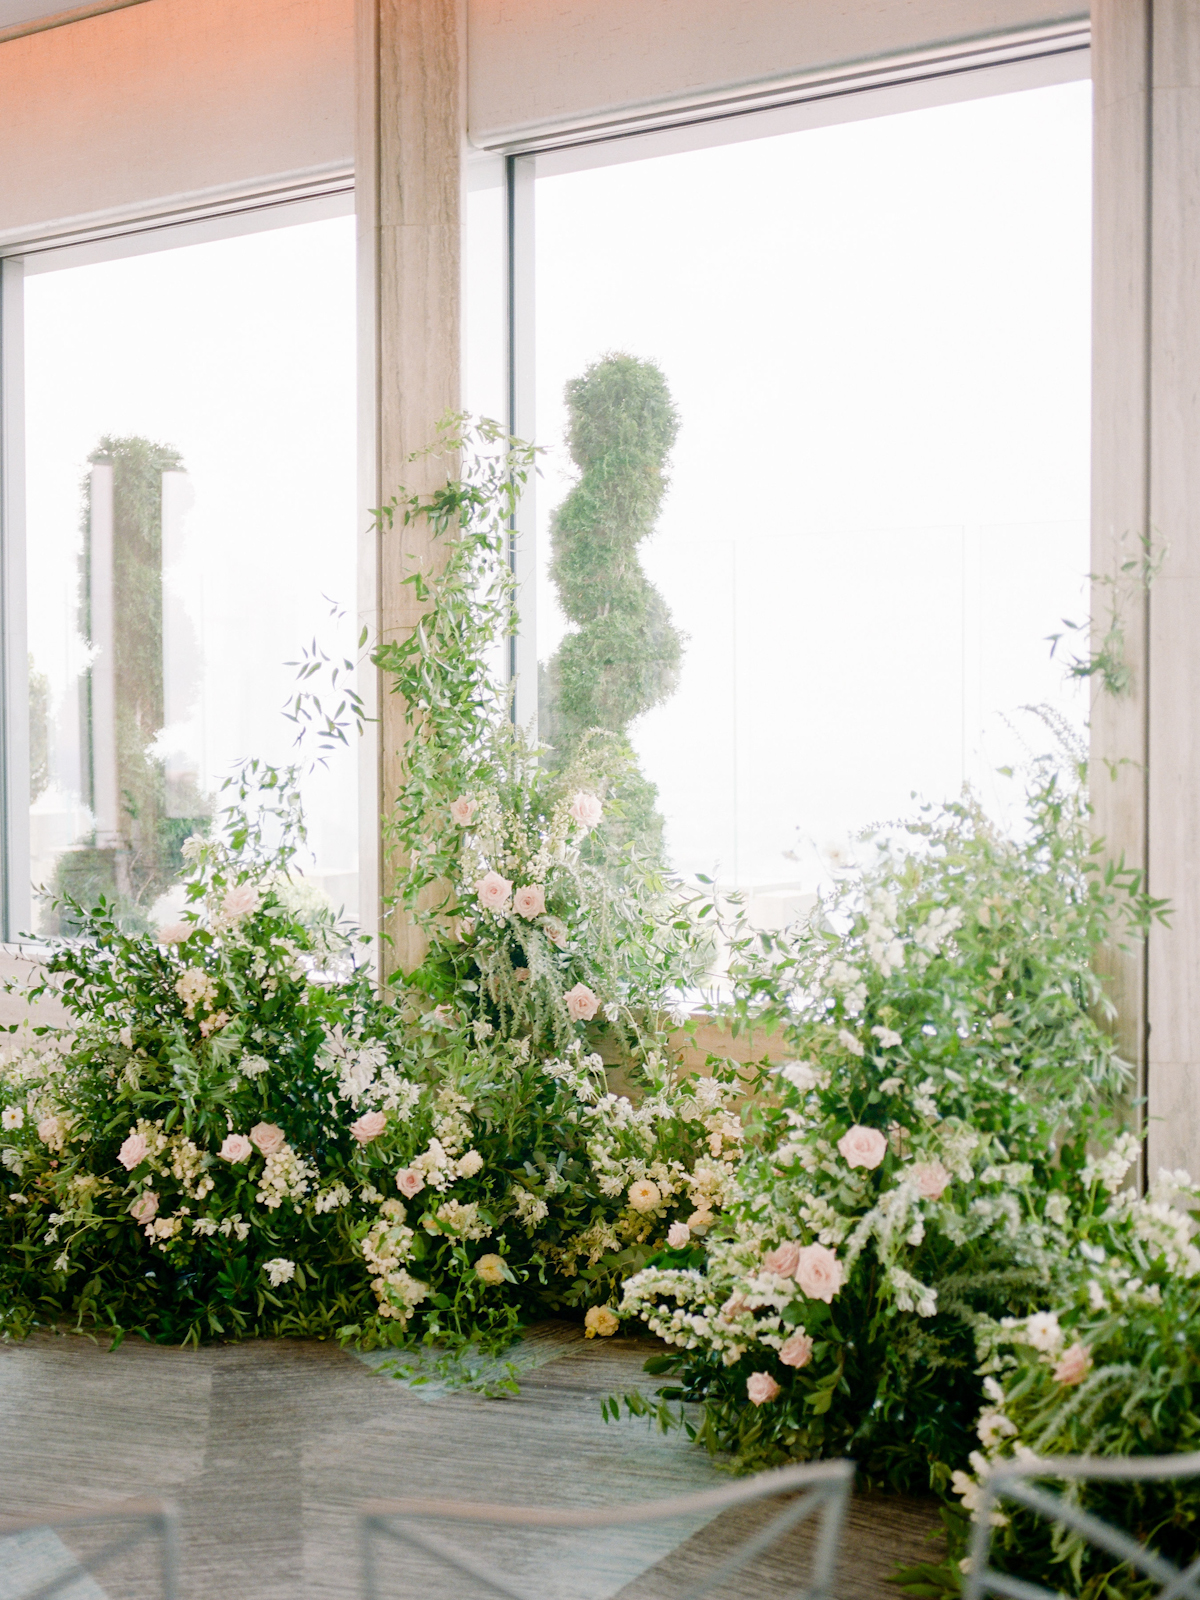 Rainbow Room wedding ceremony with flowers growing up from the ground